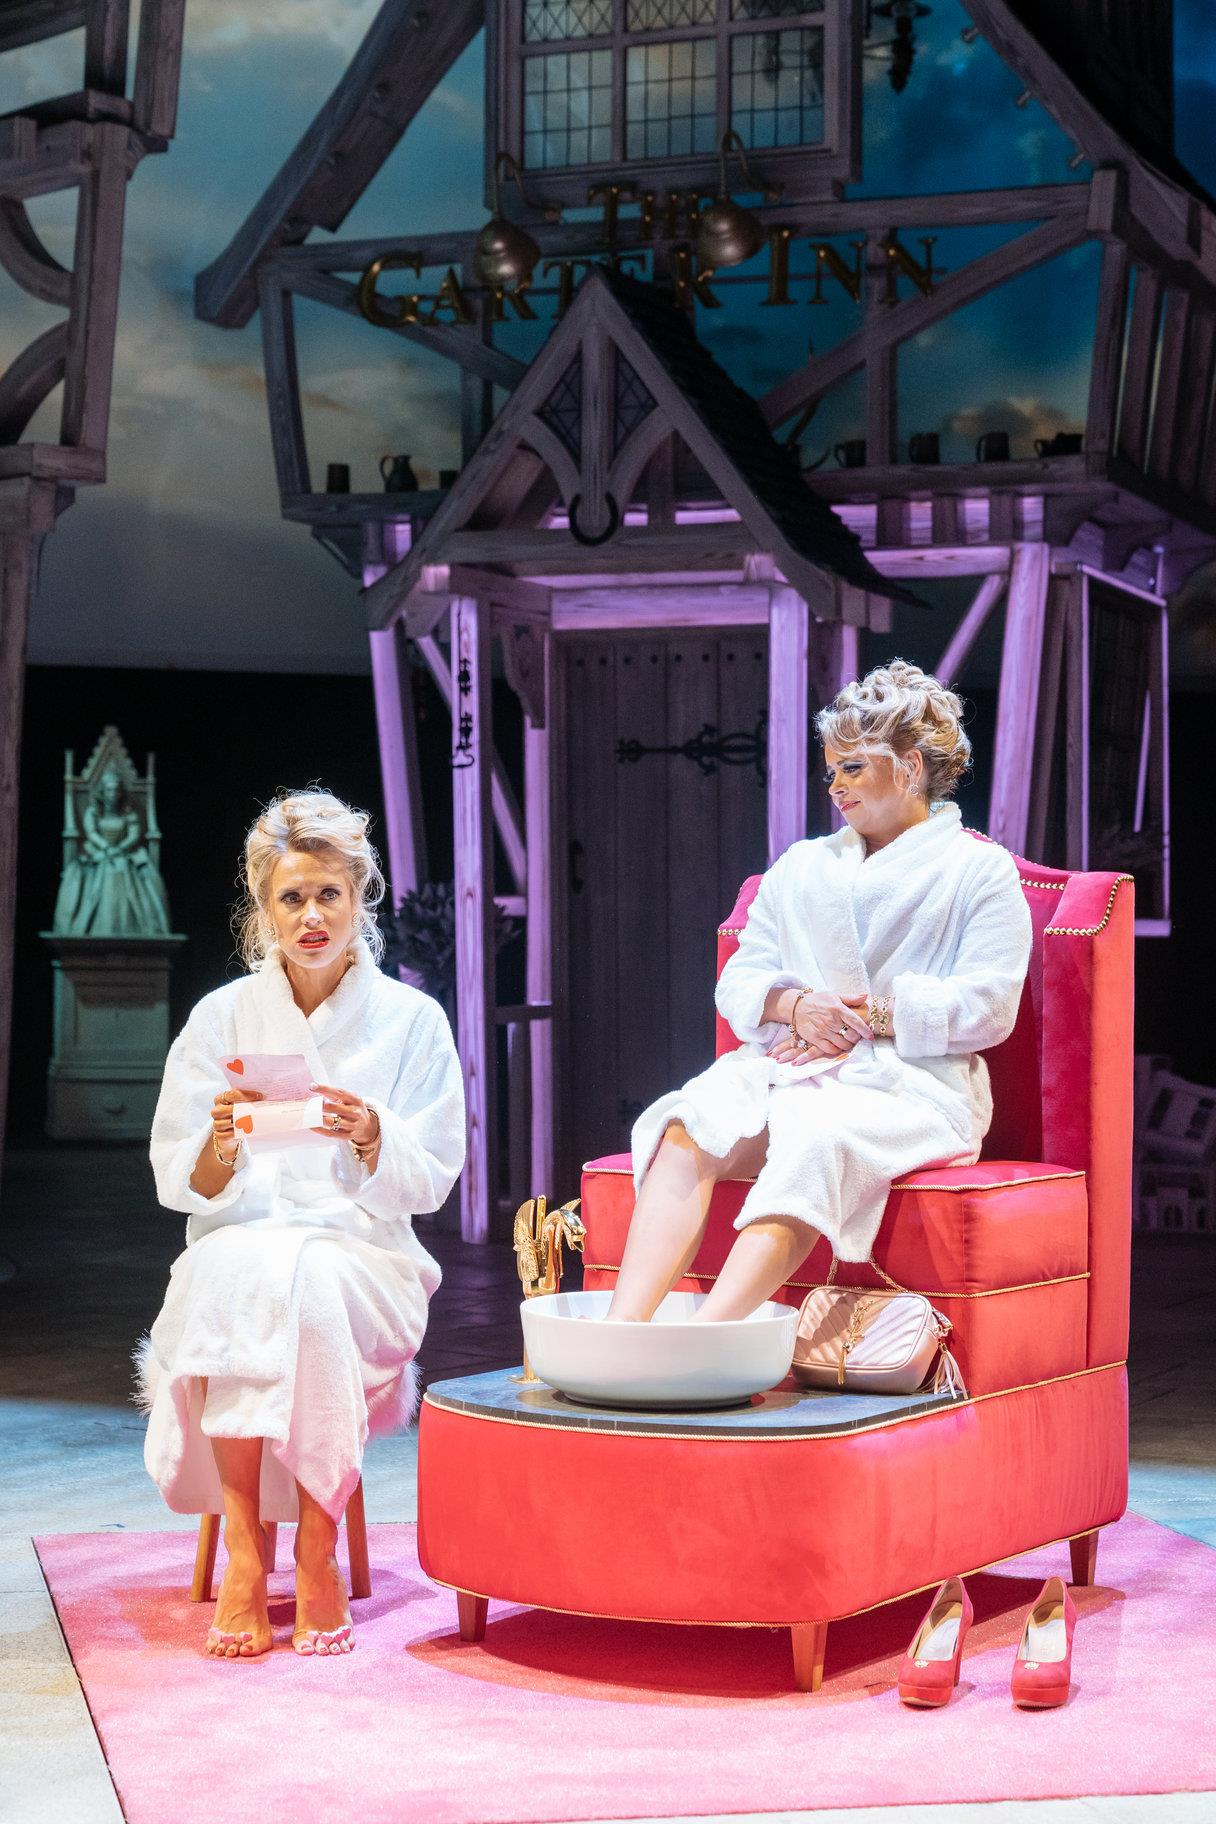 the-merry-wives-of-windsor-production-photos_-2018_2018_photo-by-manuel-harlan-_c_-rsc_258169.tmb-img-1824.jpg